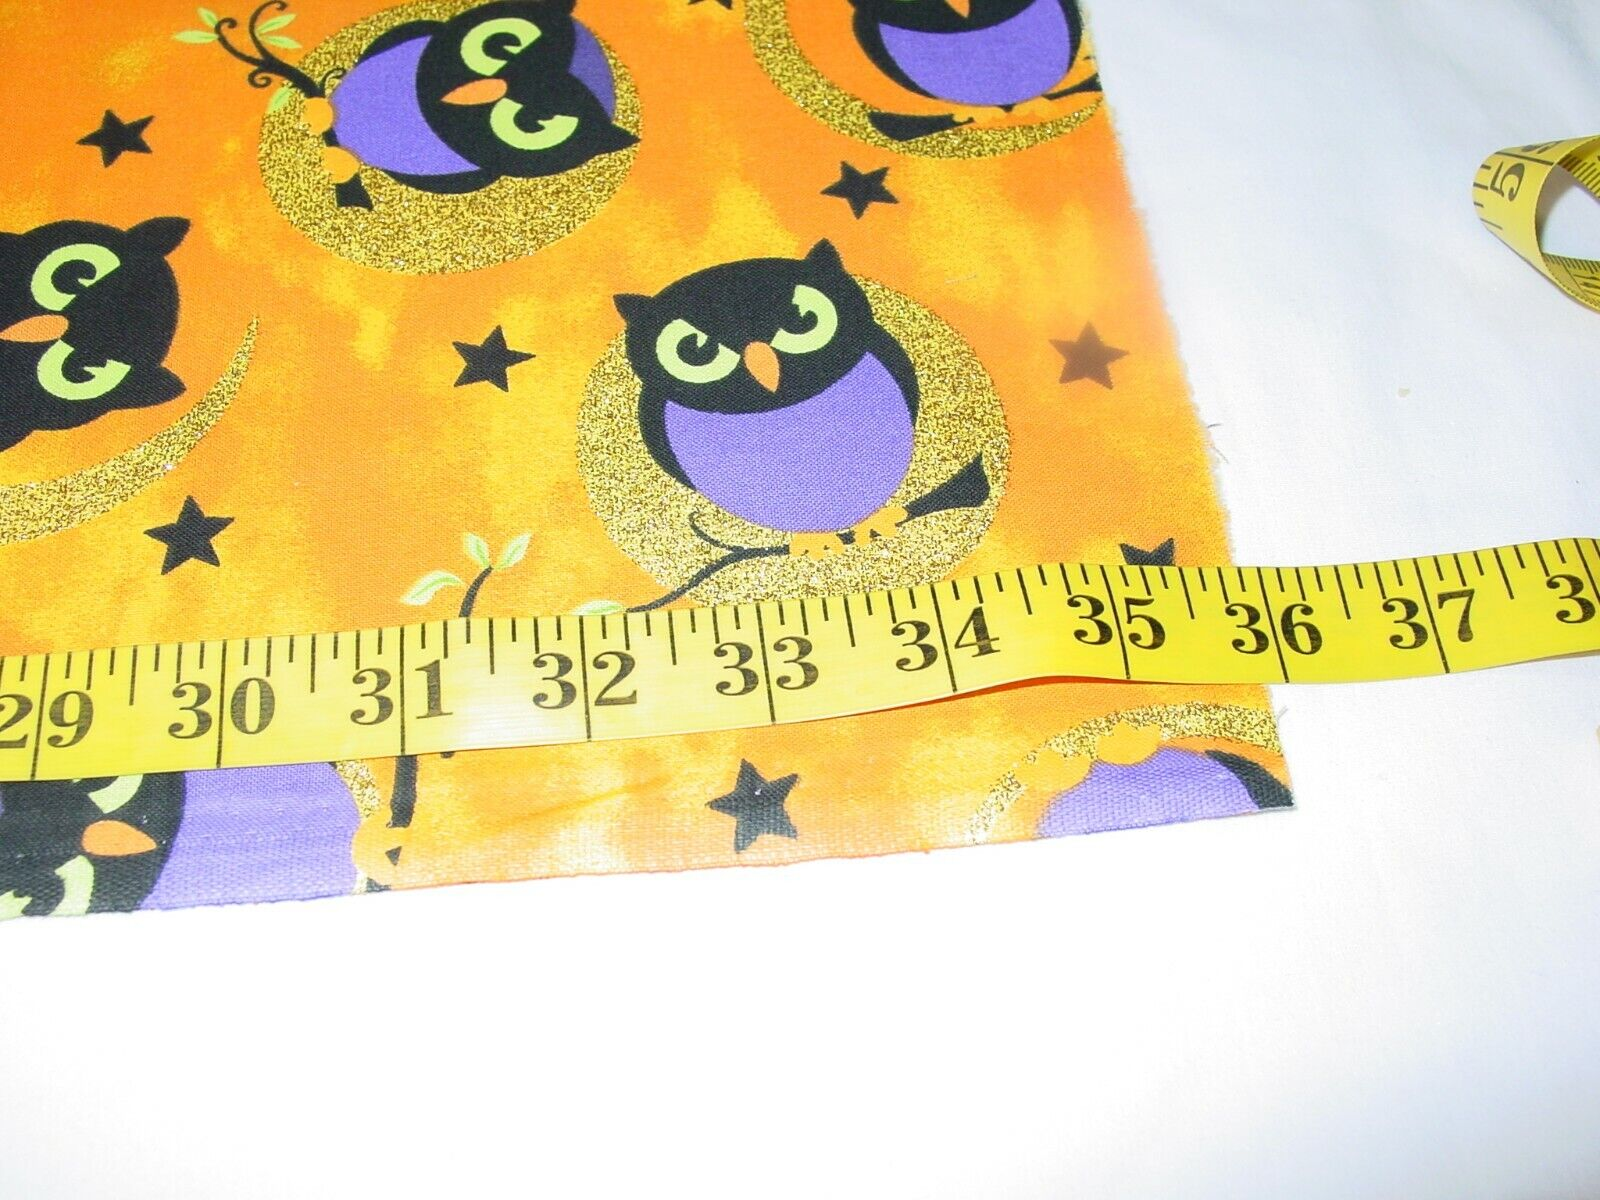 COTTON OWLS WITH GLITTER 100 COTTON REMNANT LENGTH 35 X WIDTH 43  - $11.50